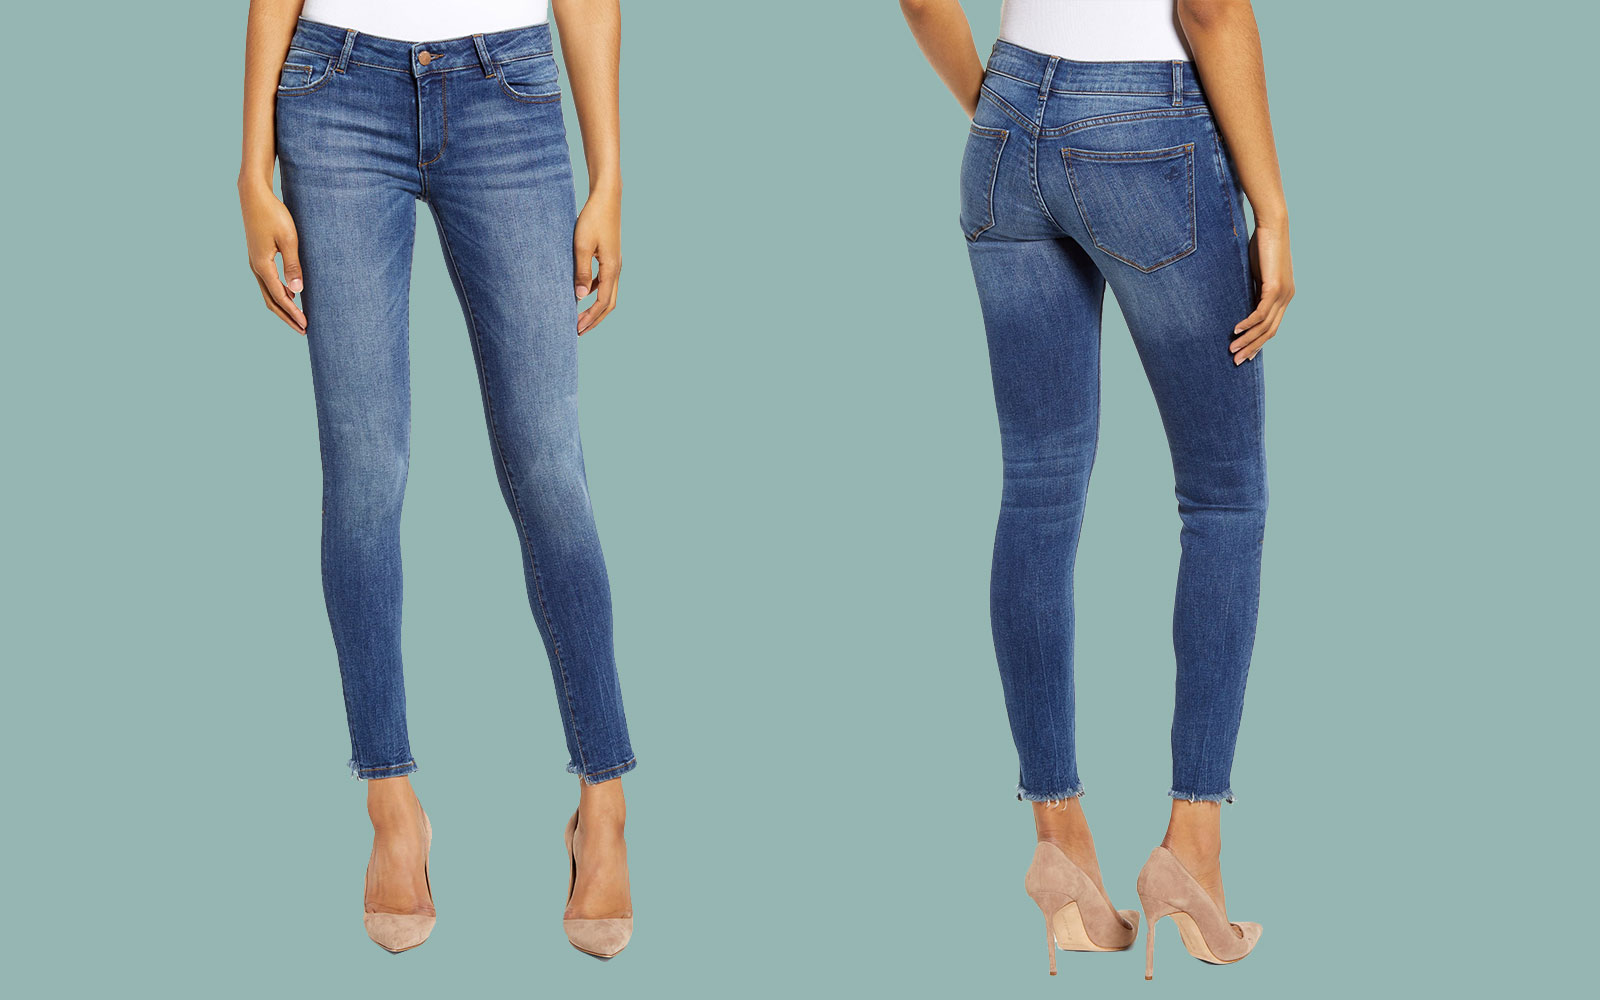 These Comfortable Jeans Are As Stretchy As Leggings